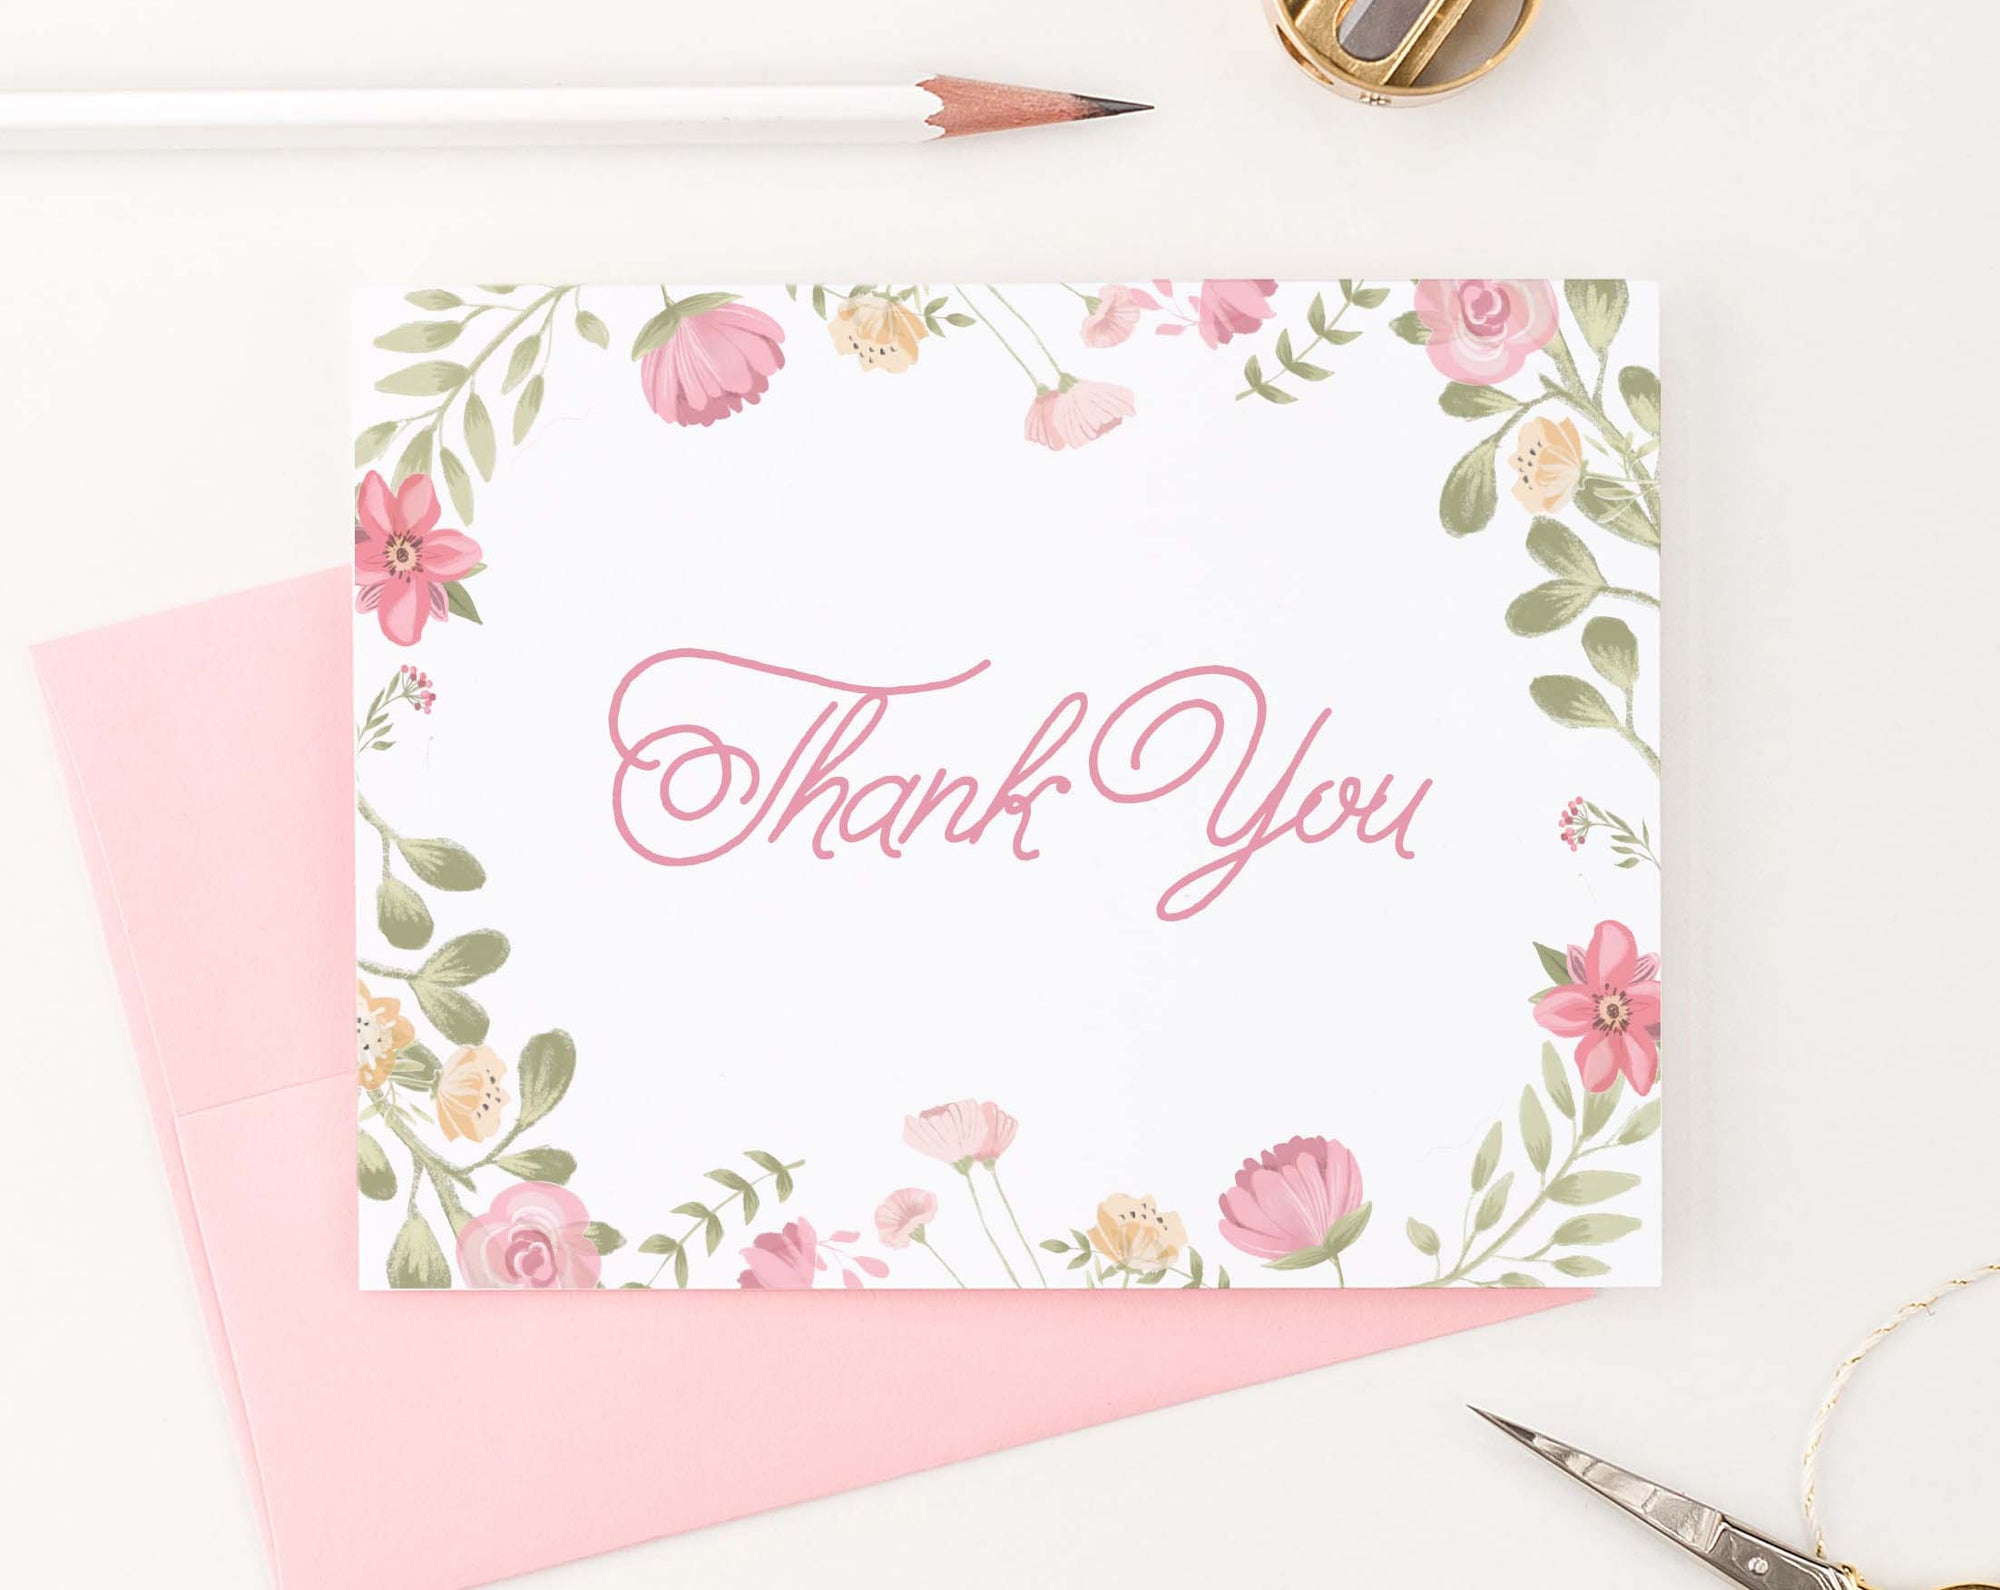 TY071 cute watercolor floral folded thank you notes elegant chic kids